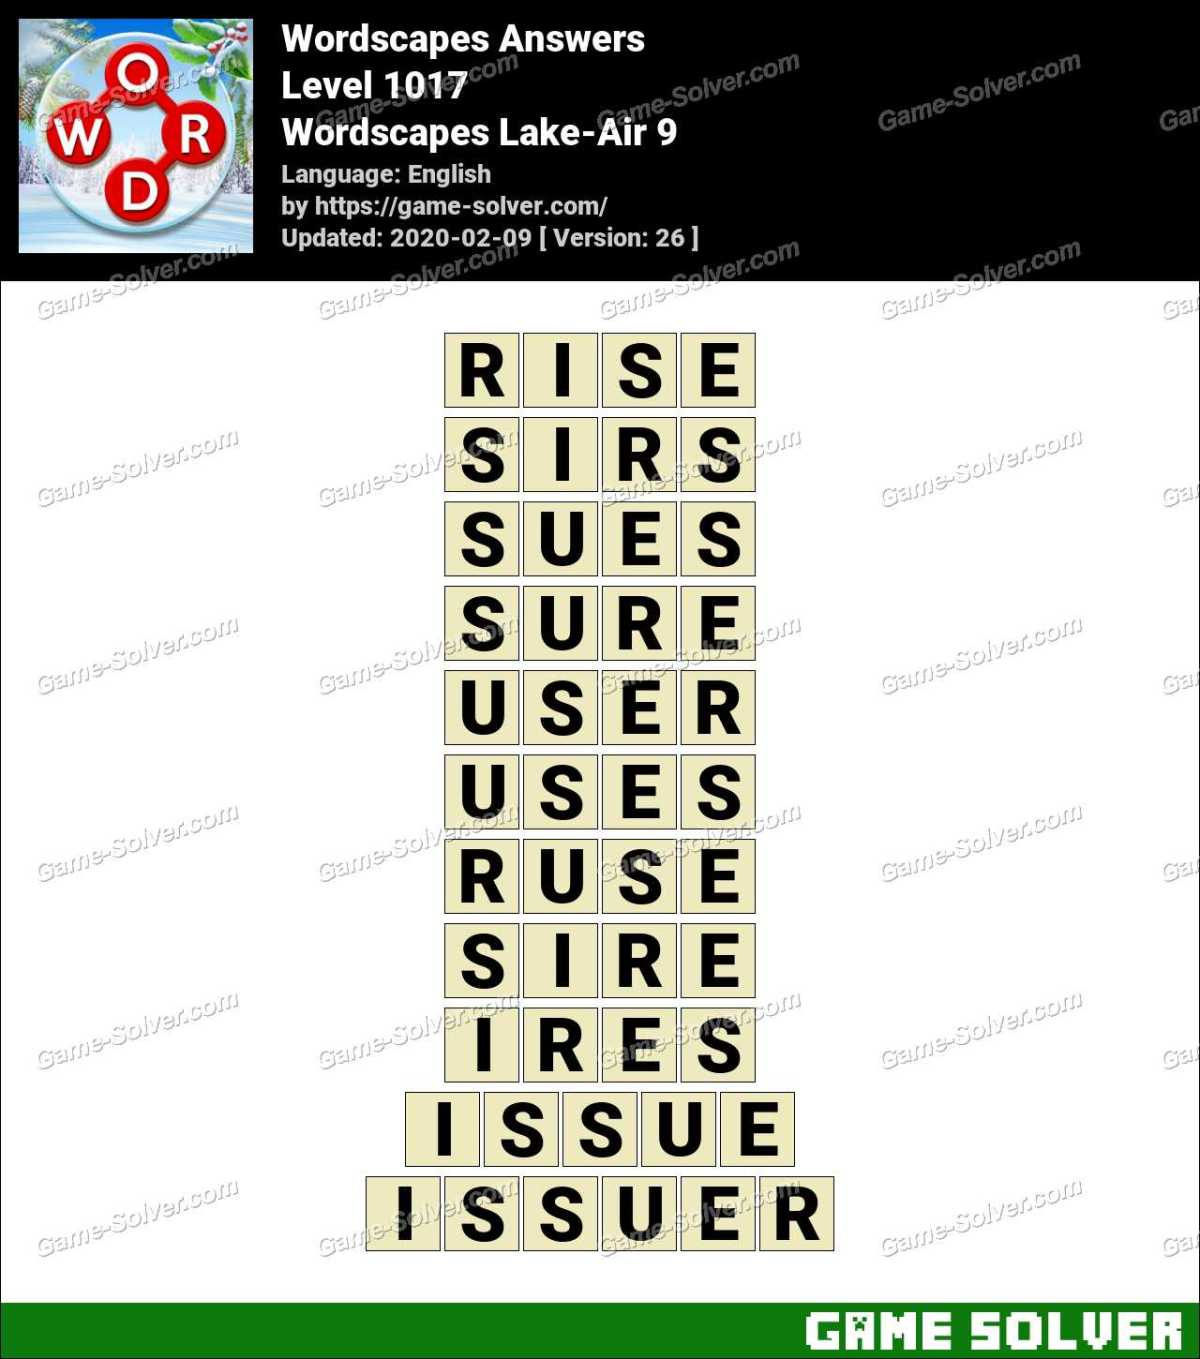 Wordscapes Lake-Air 9 Answers